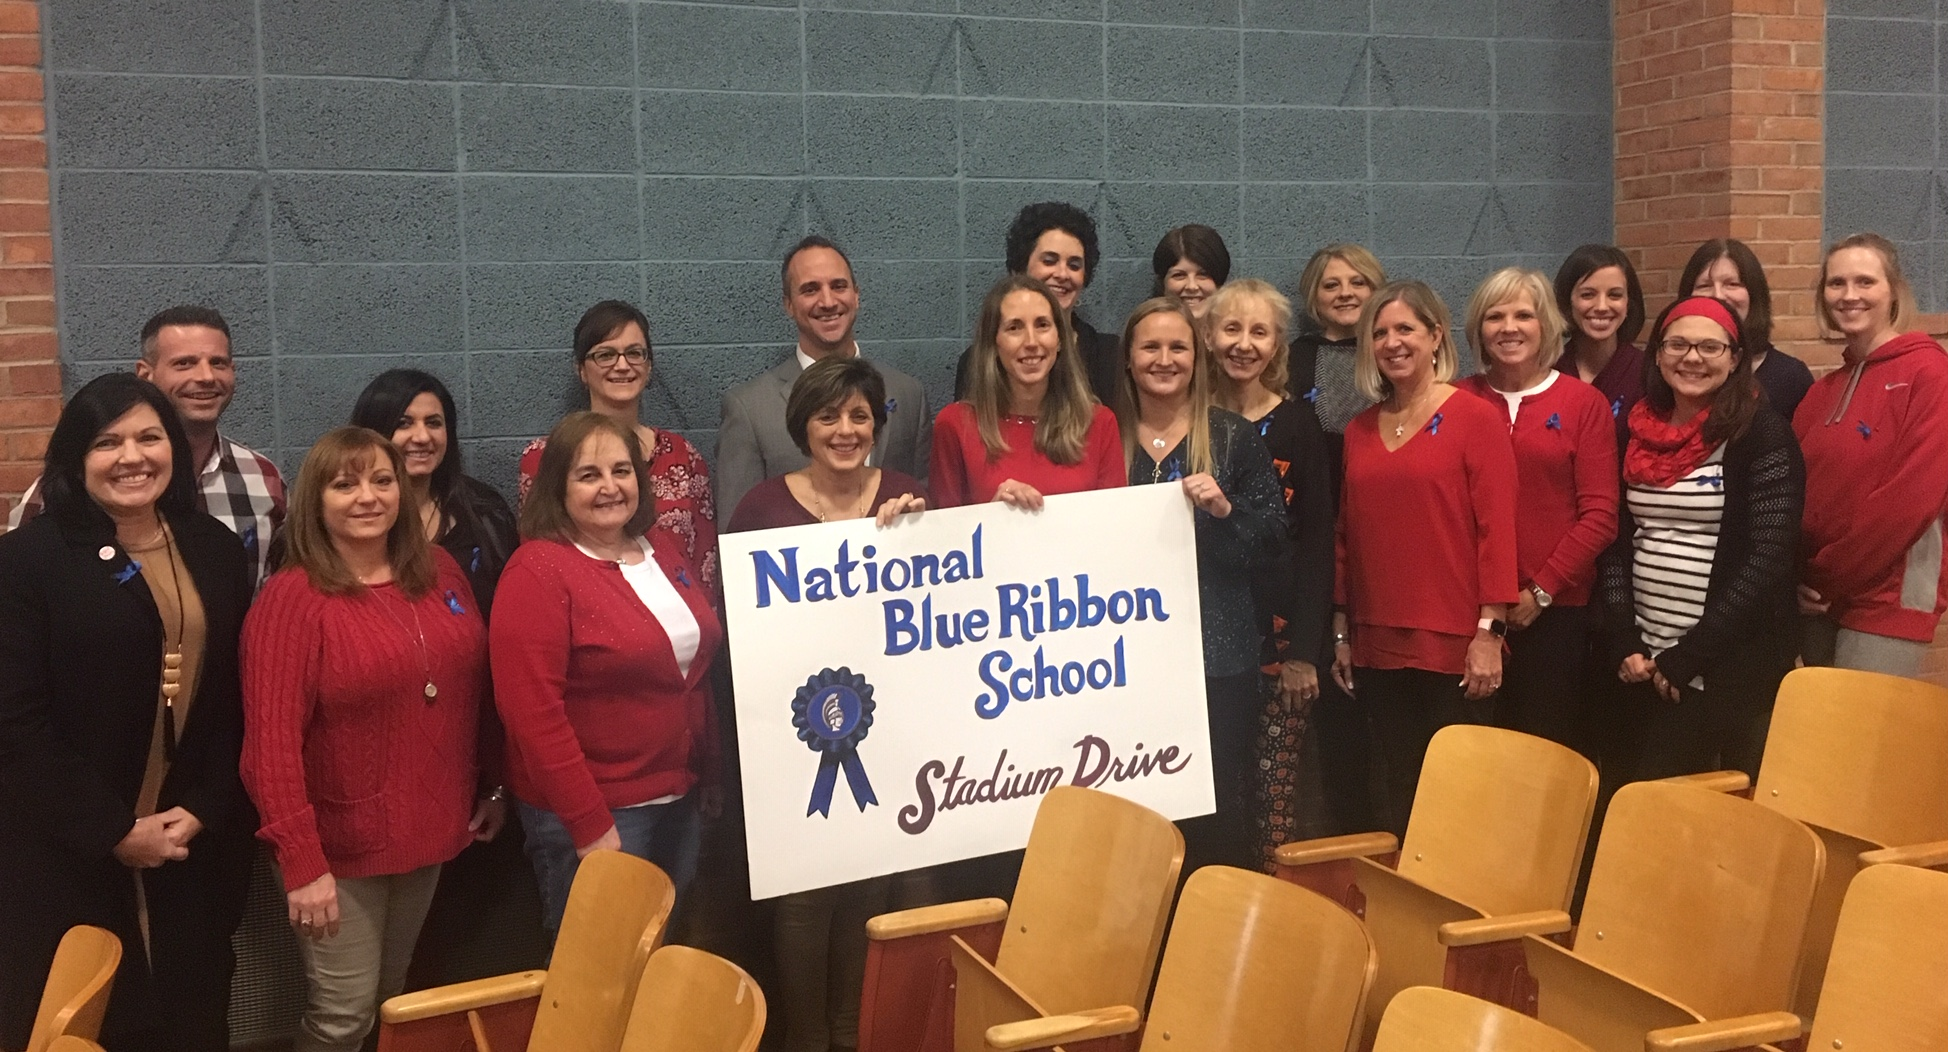 stadium drive staff holding sign with national blue ribbon school